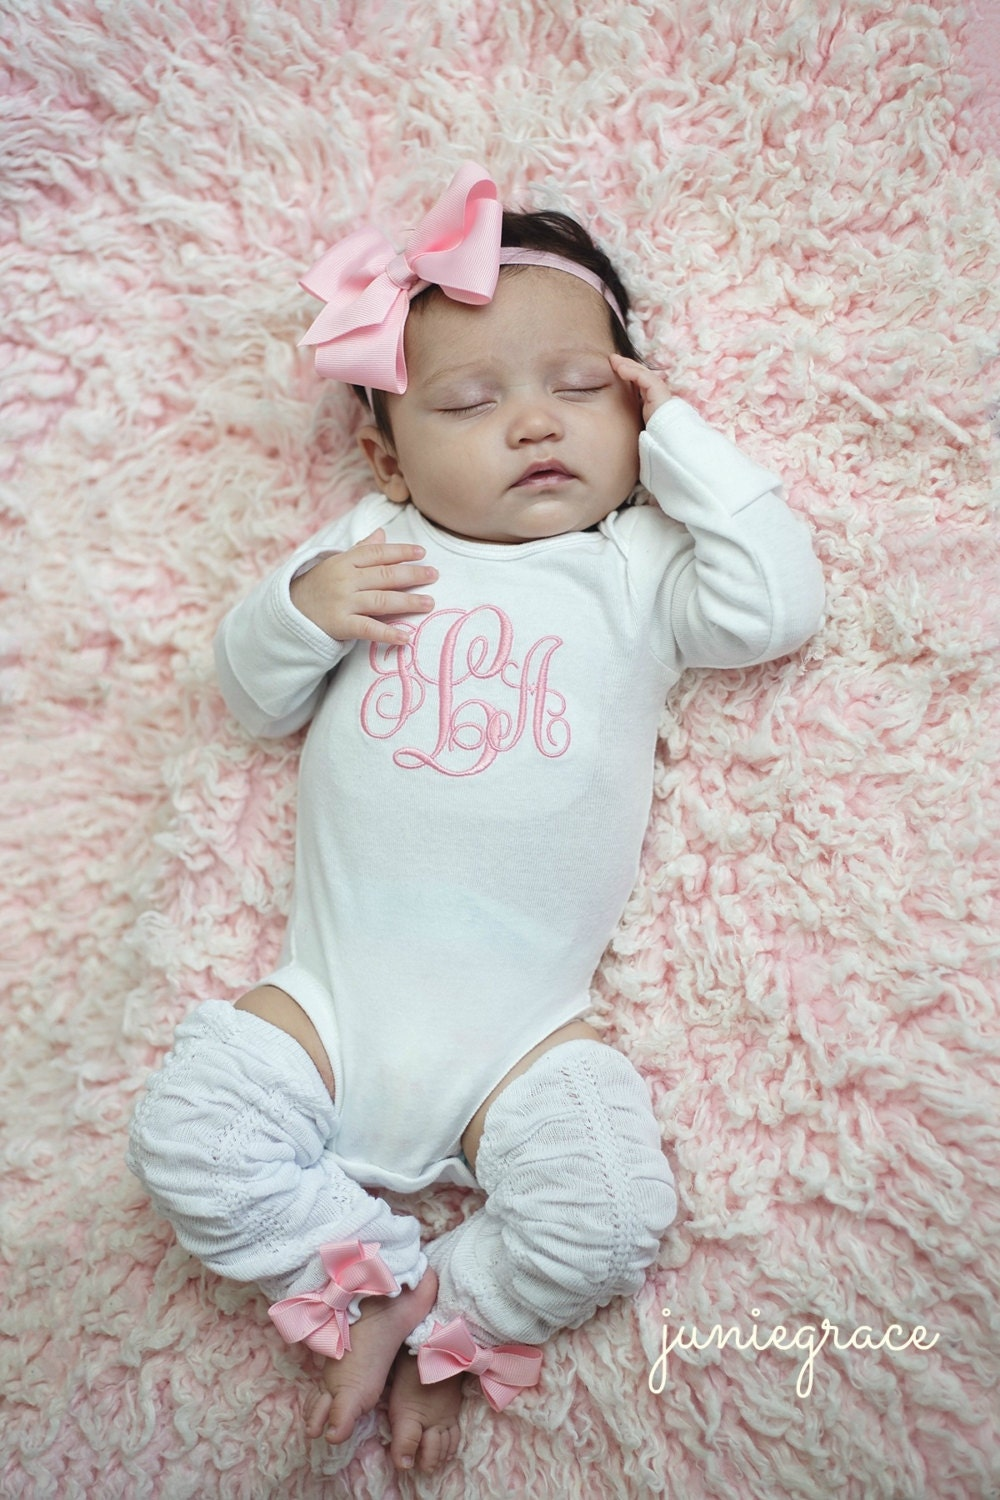 Free shipping on baby girl clothes at oraplanrans.tk Shop dresses, bodysuits, footies, coats & more clothing for baby girls. Free shipping & returns.